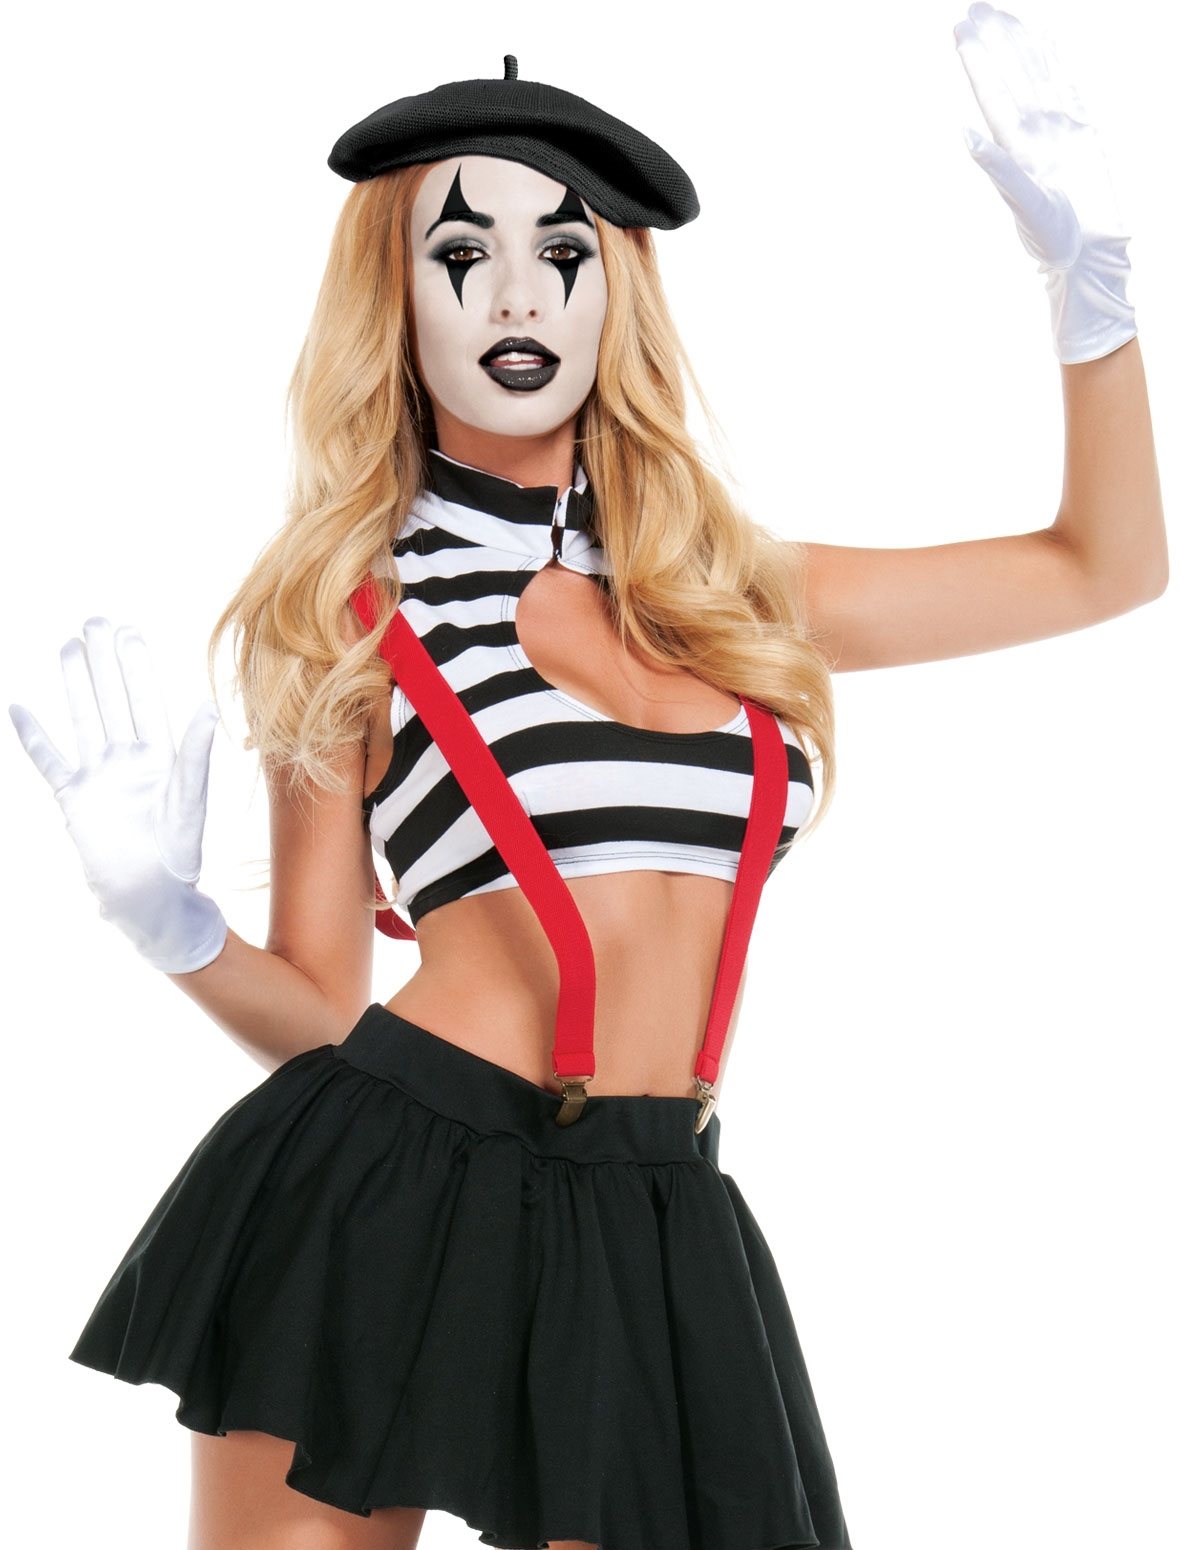 Hush Mime Costume